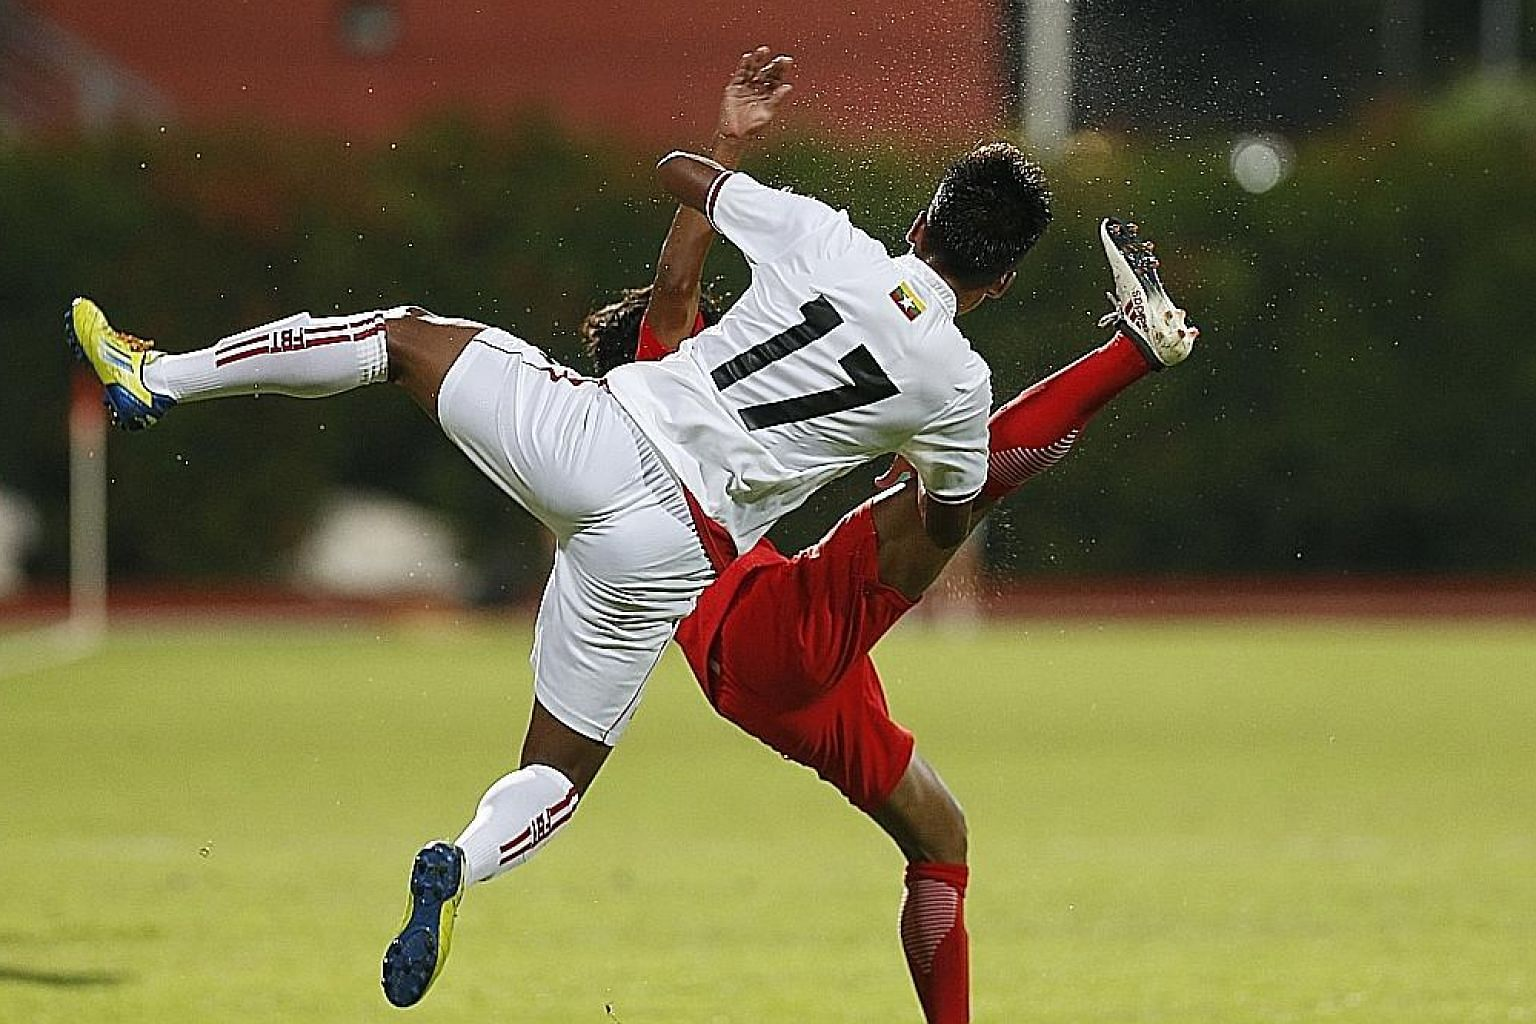 Myanmar defender Nyein Chan Aung (No. 17) making his presence felt at Bishan stadium yesterday. Myanmar, with an average age of 18, beat the Young Lions 2-0 in a friendly.